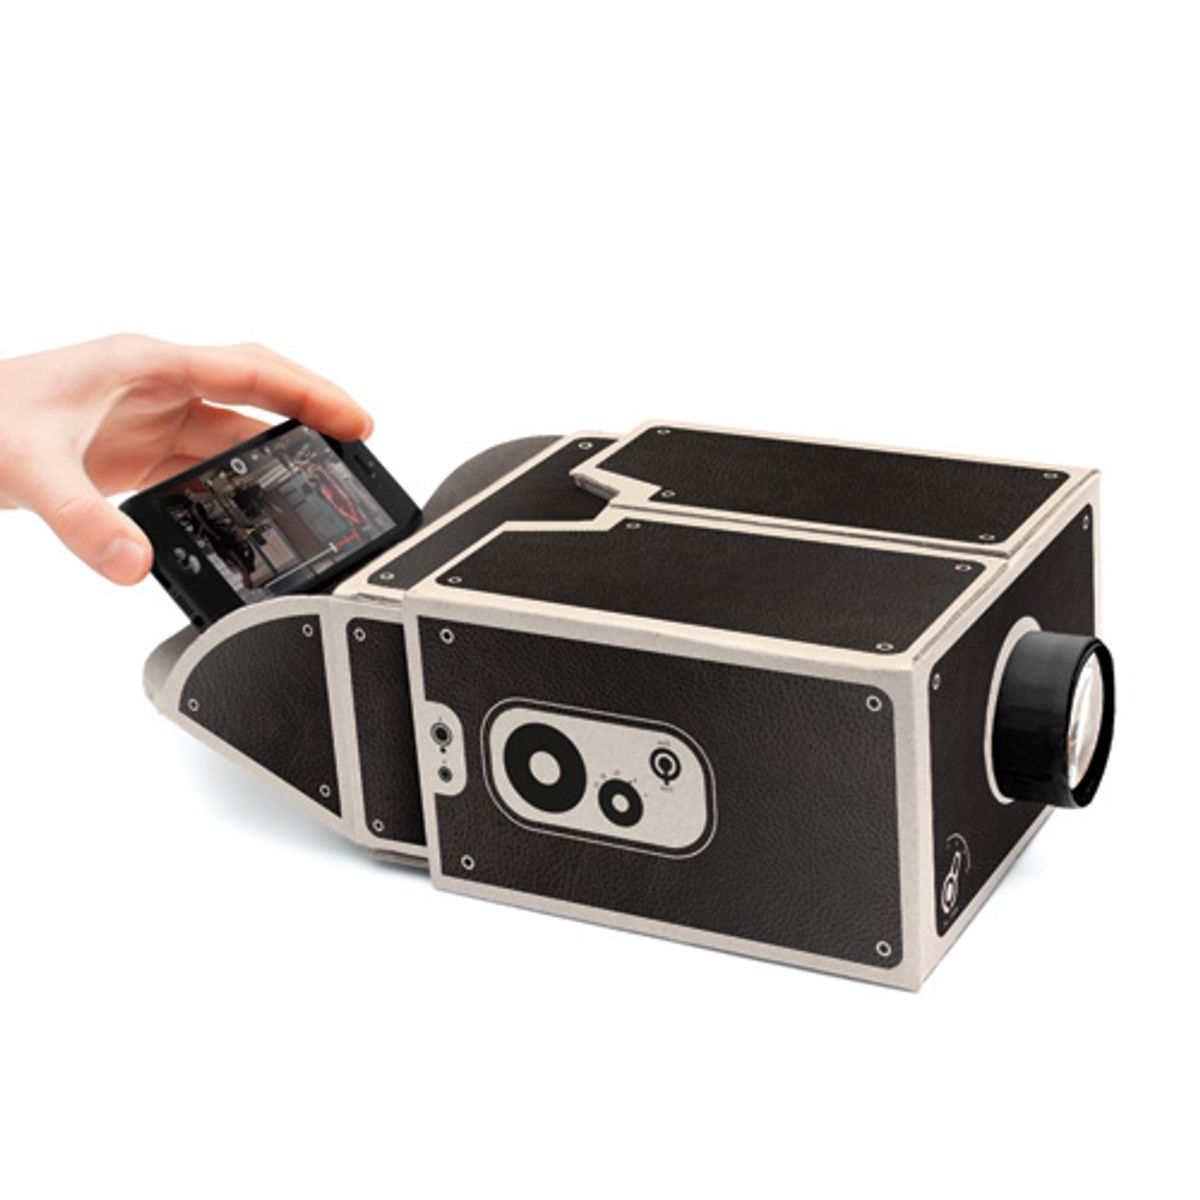 Projecteur en kit à assembler Smartphone Projector Luckies